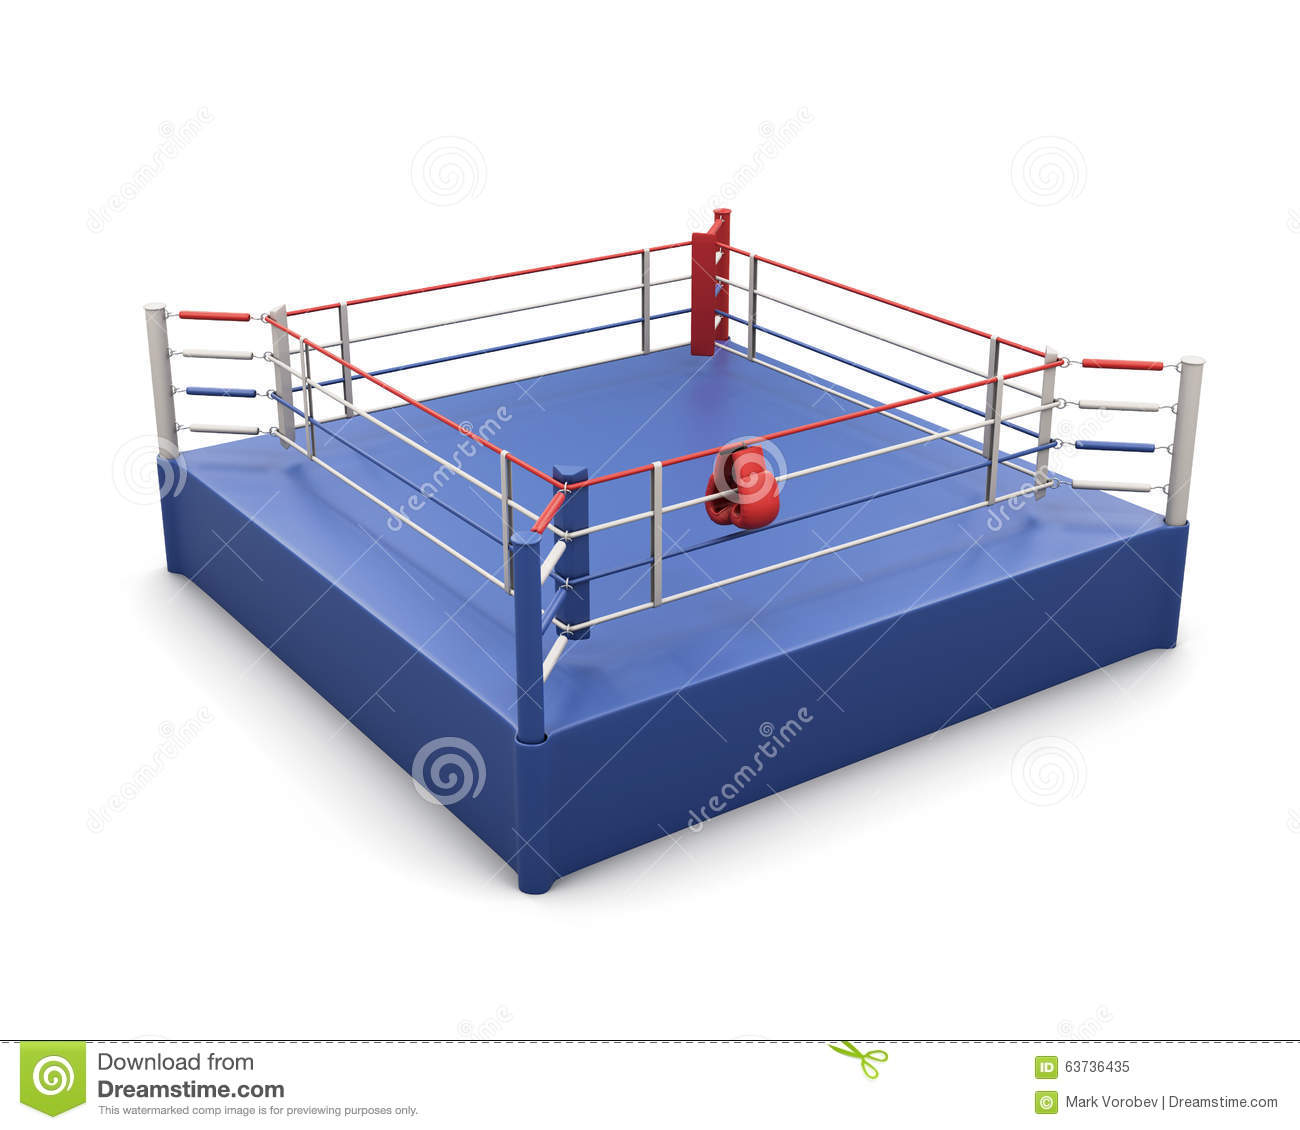 Boxing ring and gloves on the ropes 3d stock illustration download boxing ring and gloves on the ropes 3d stock illustration illustration of ccuart Images